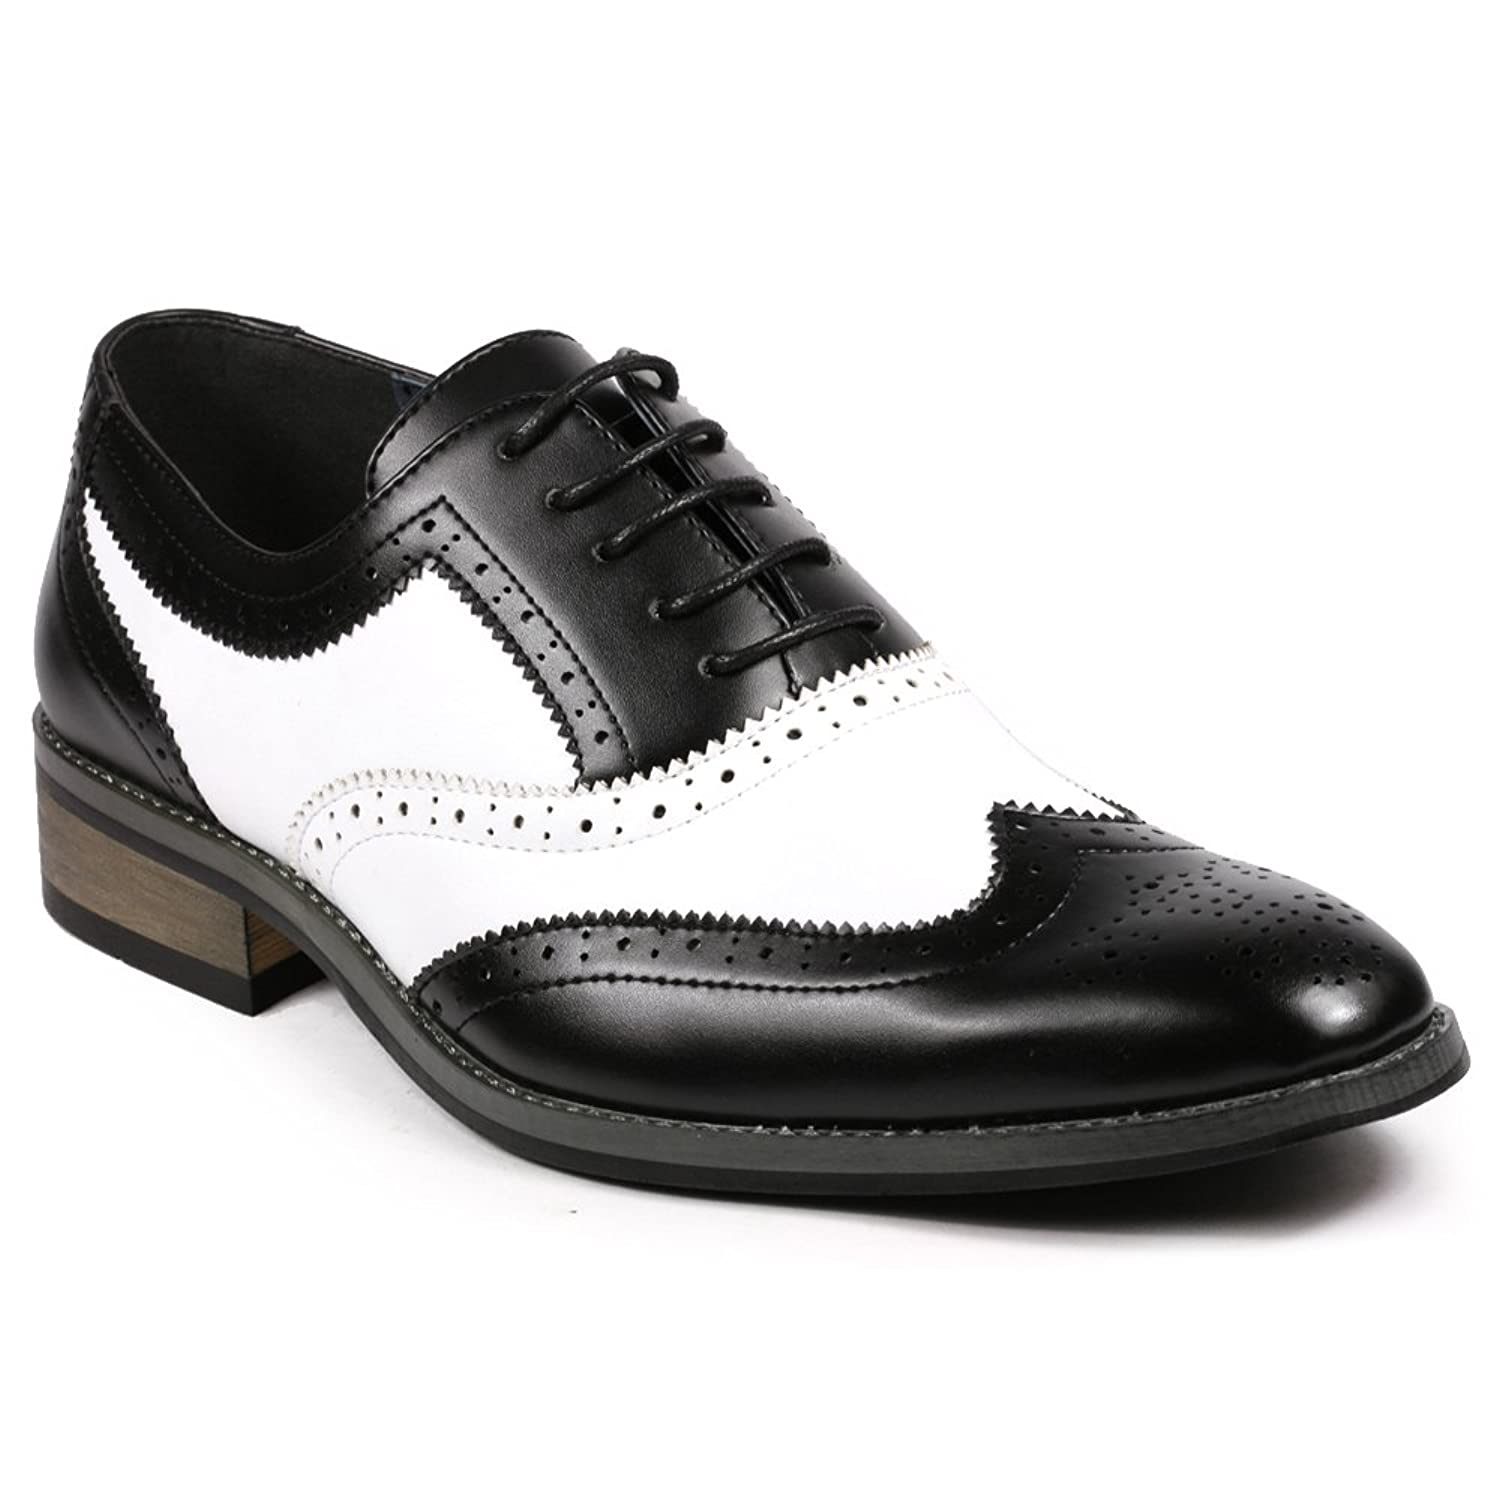 1940s Style Mens Shoes UV Signature PA002 Mens Two Tone Perforated Wing Tip Lace Up Oxford Dress Shoes $44.99 AT vintagedancer.com